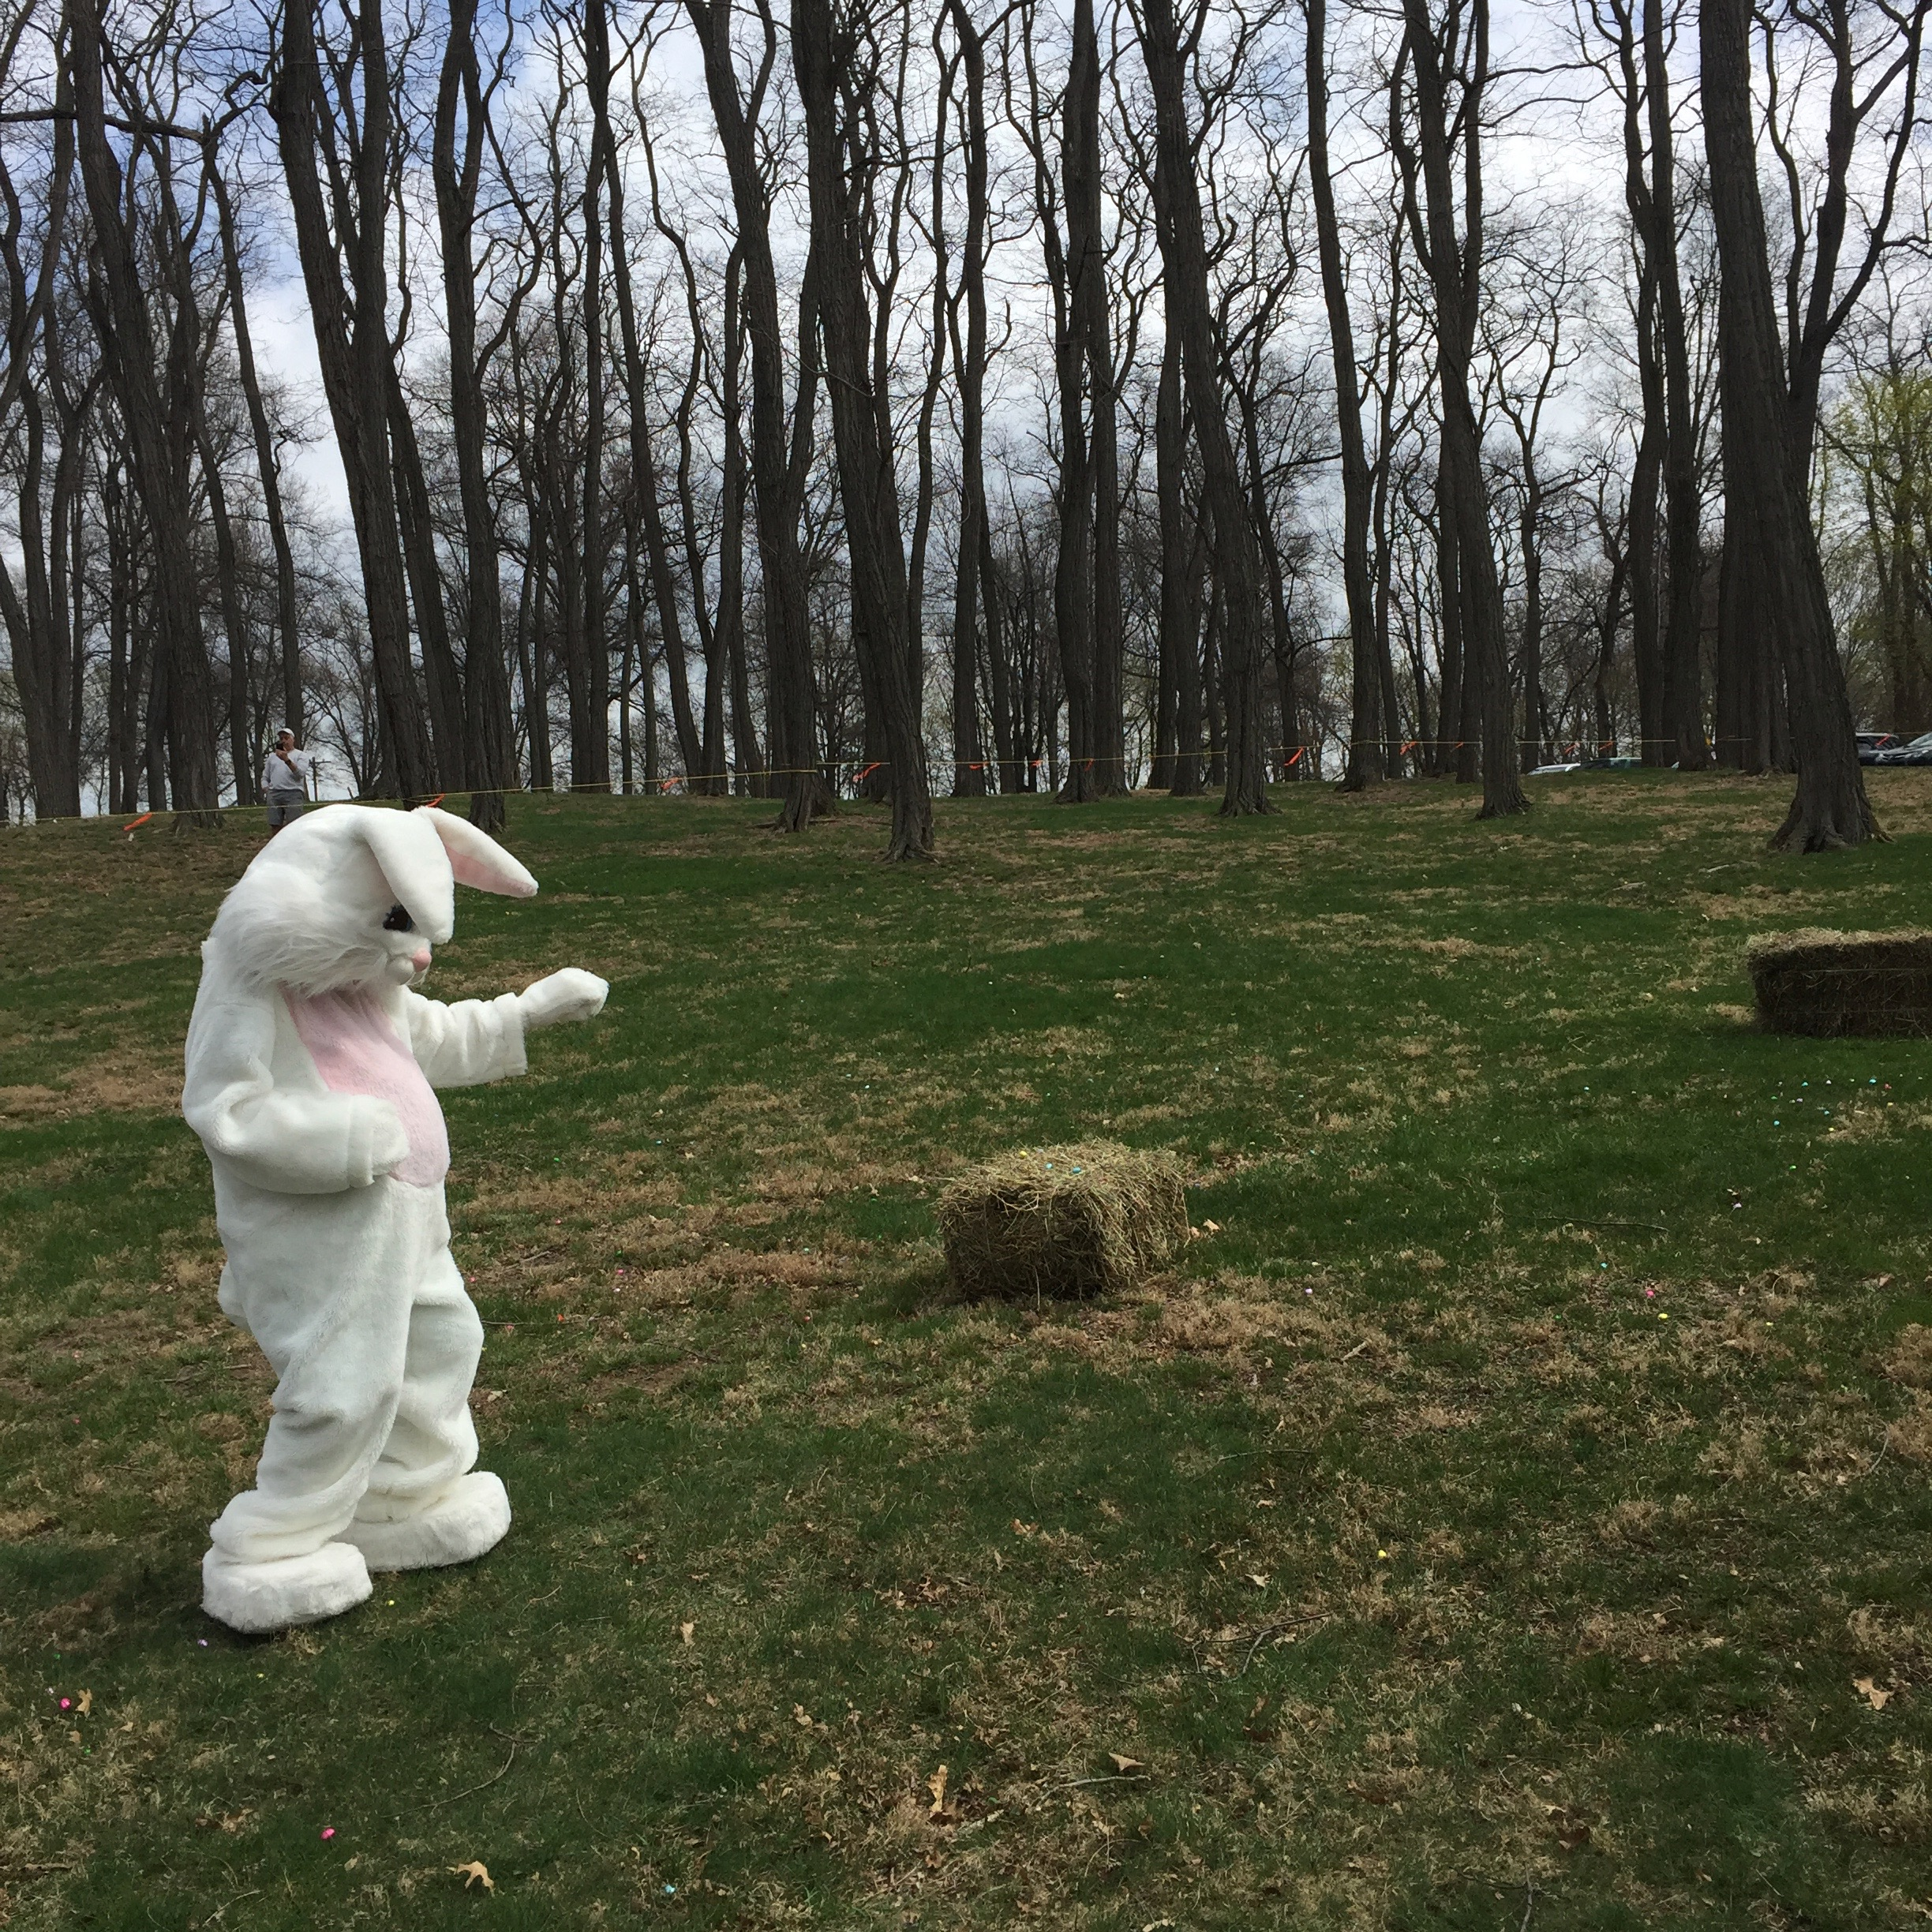 The Easter Bunny at the 2017 Easter Egg Hunt at Memorial Park. Photo Credit: Katie Hellmuth Martin